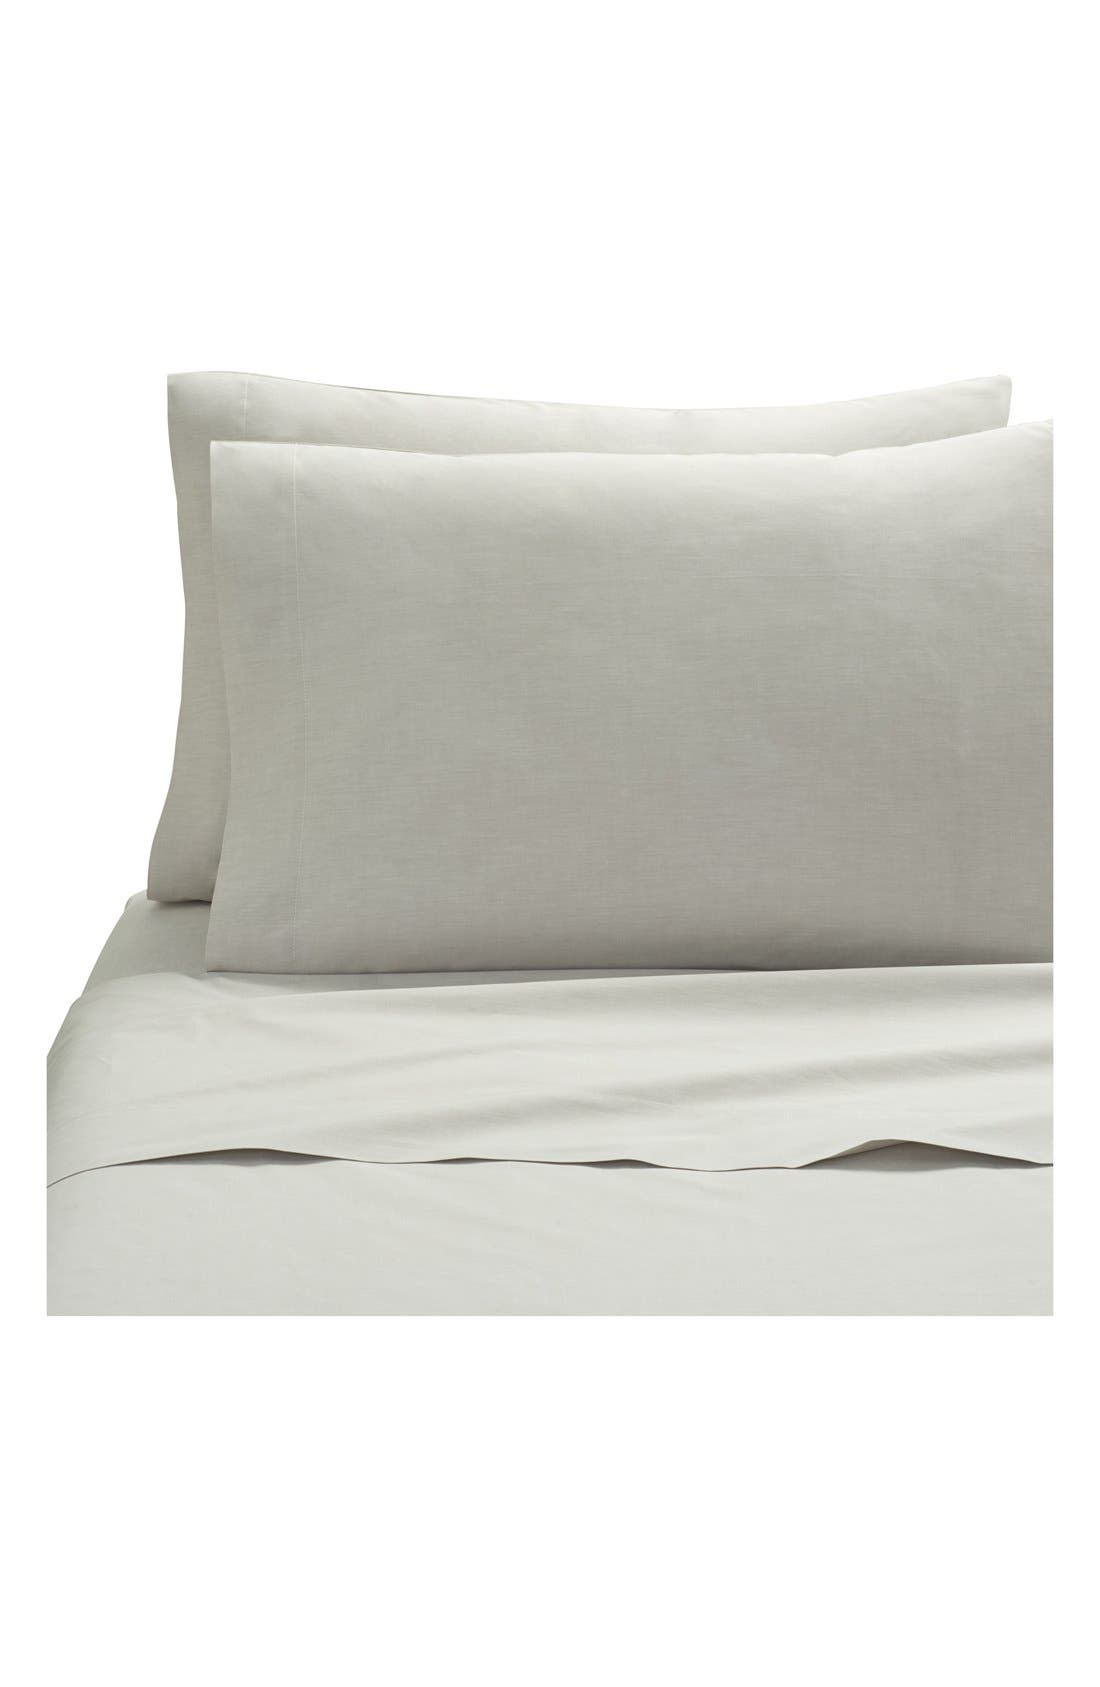 Alternate Image 1 Selected - KASSATEX Ascott Pillowcases